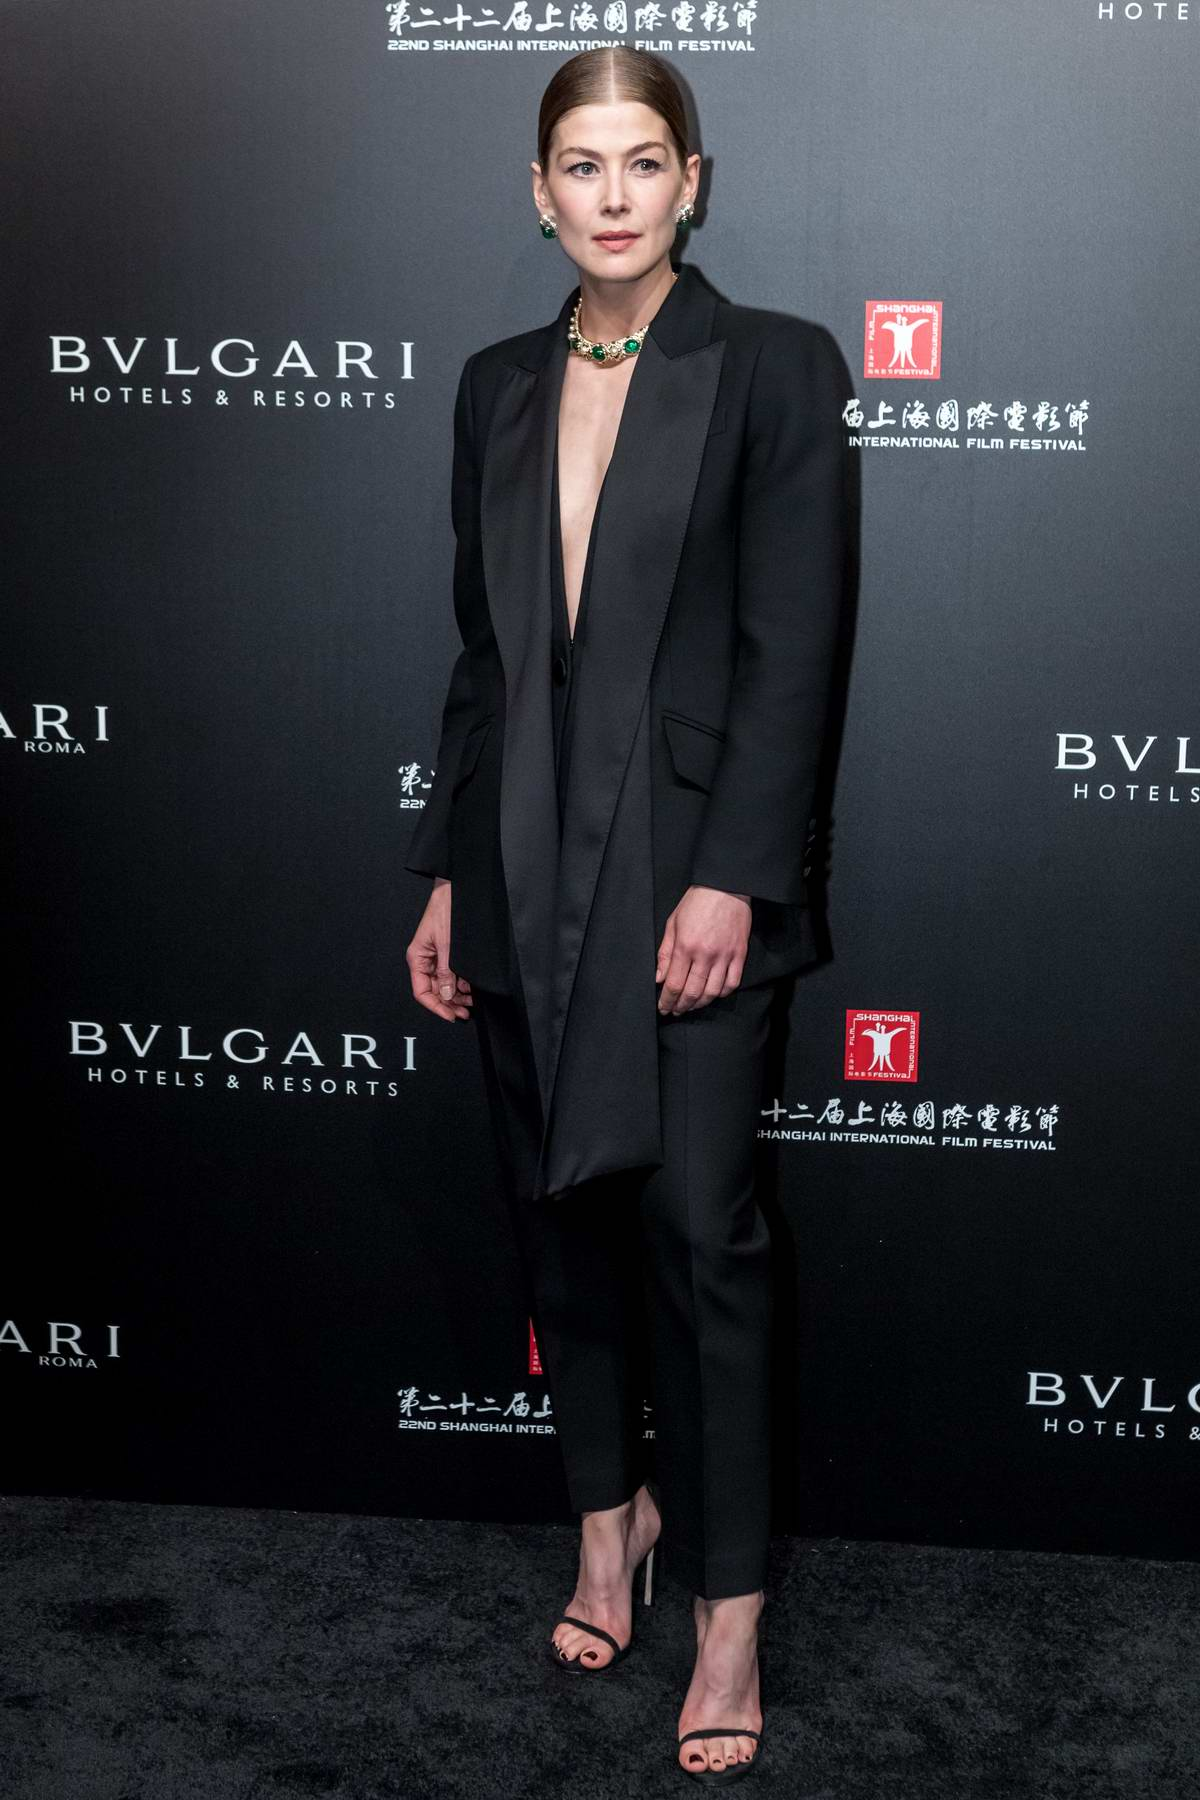 Rosamund Pike attends the 22nd Shanghai International Film Festival - Opening ceremony for Bvlgari in Shanghai, China